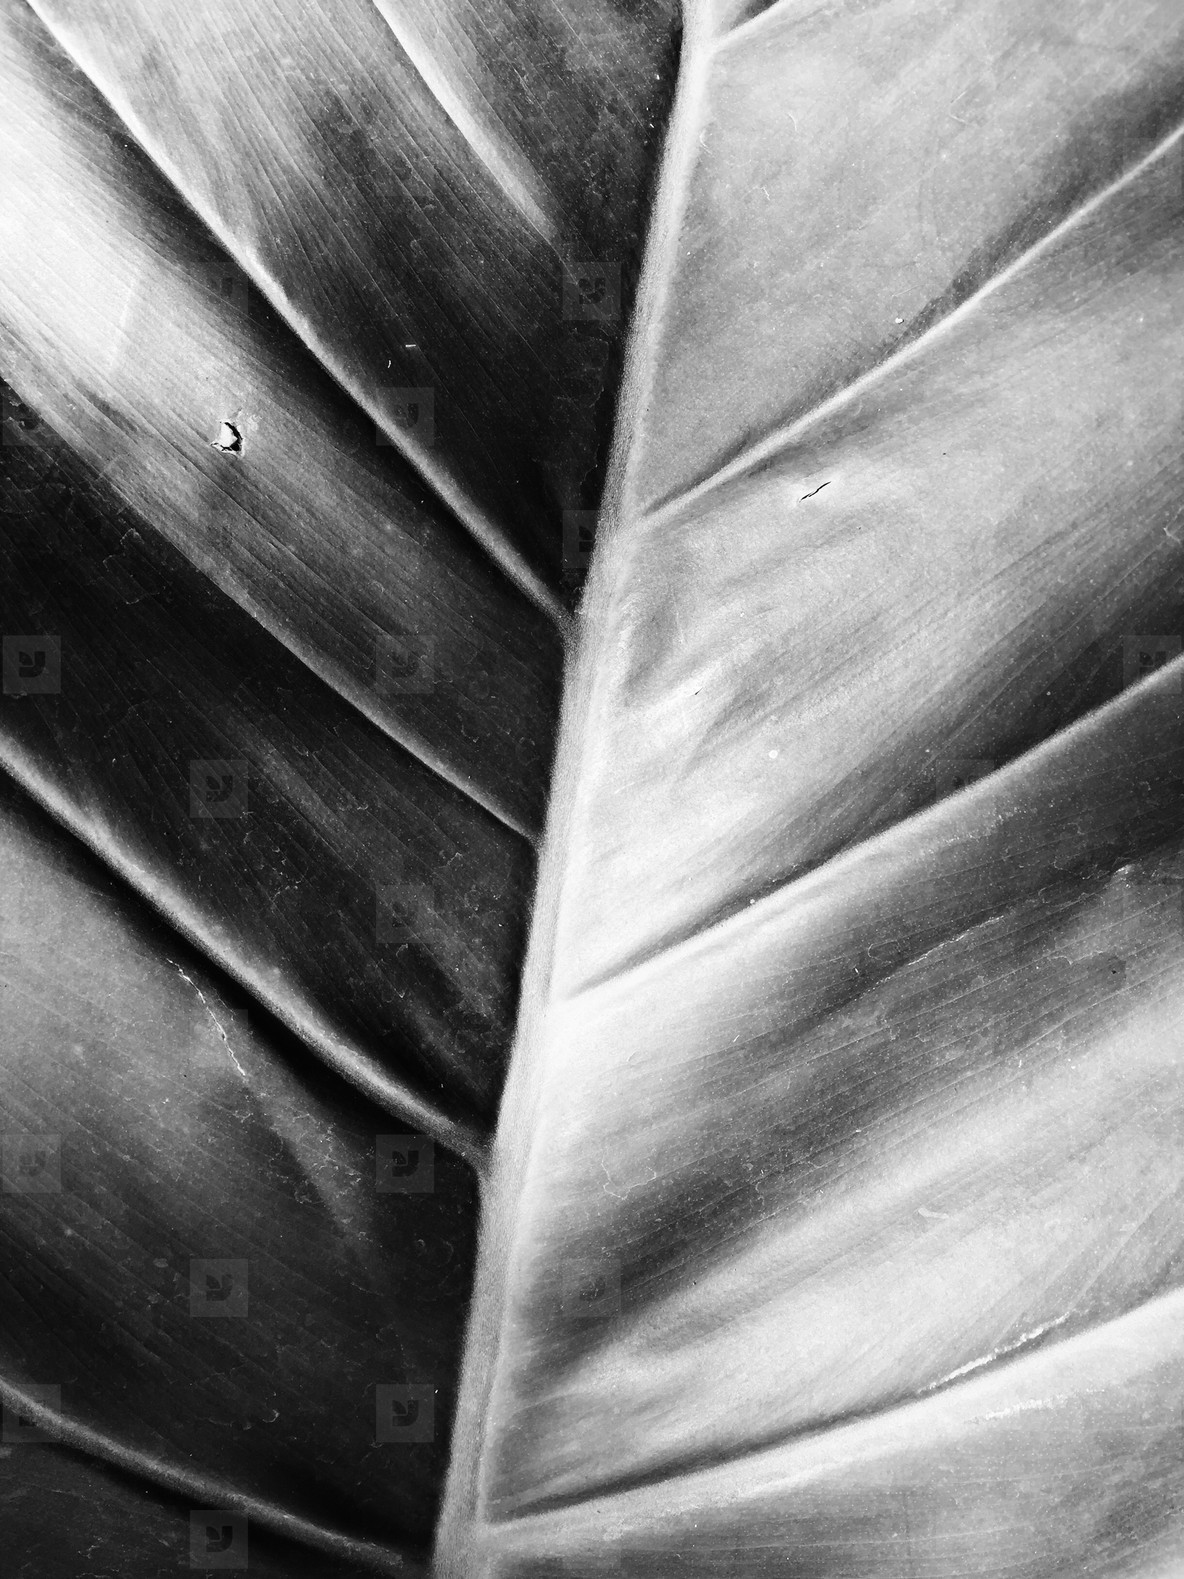 Close up of leaf